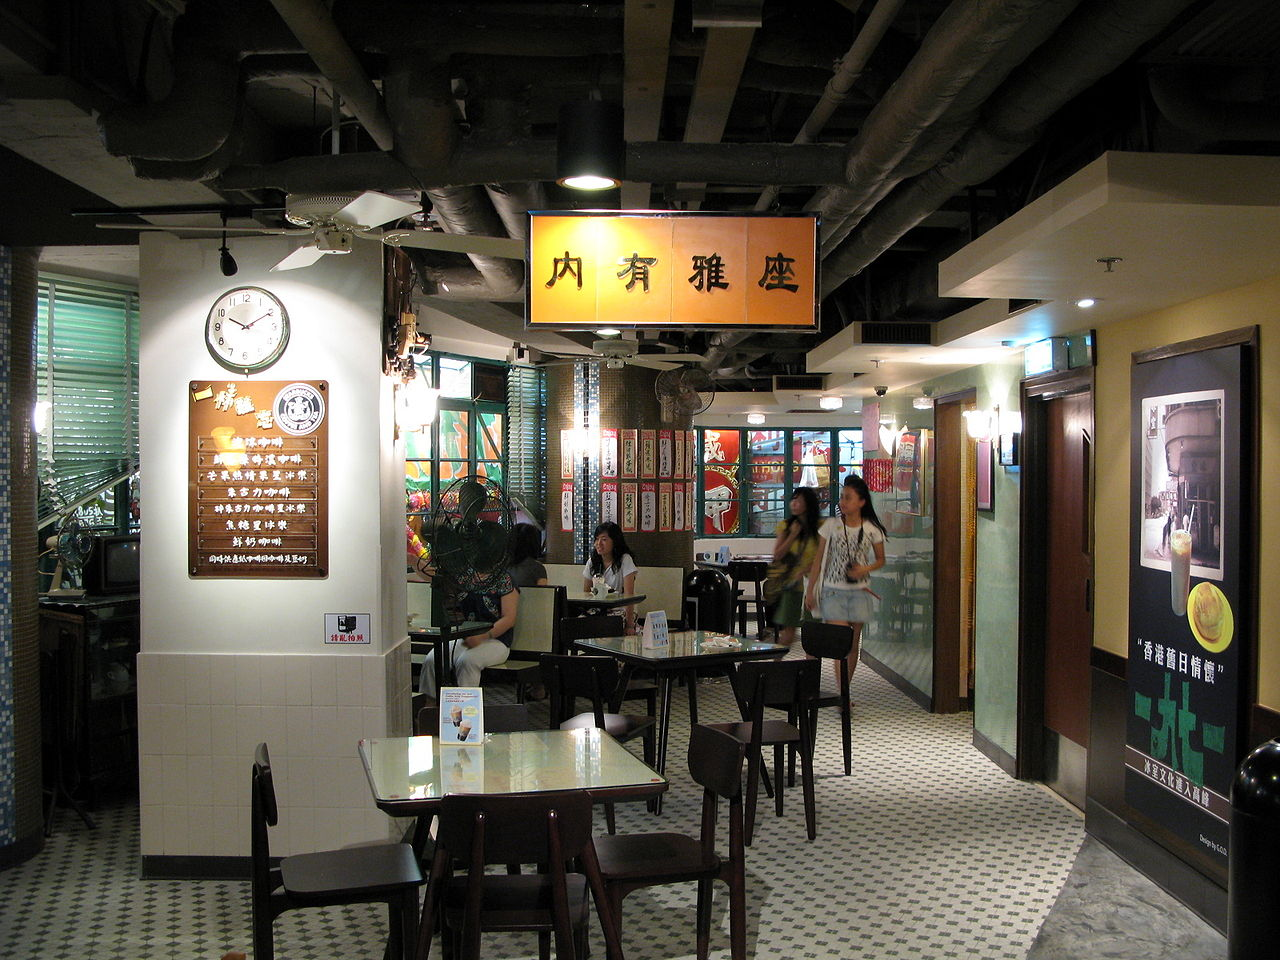 Hong Kong Duddell Street Starbucks, by WiNG